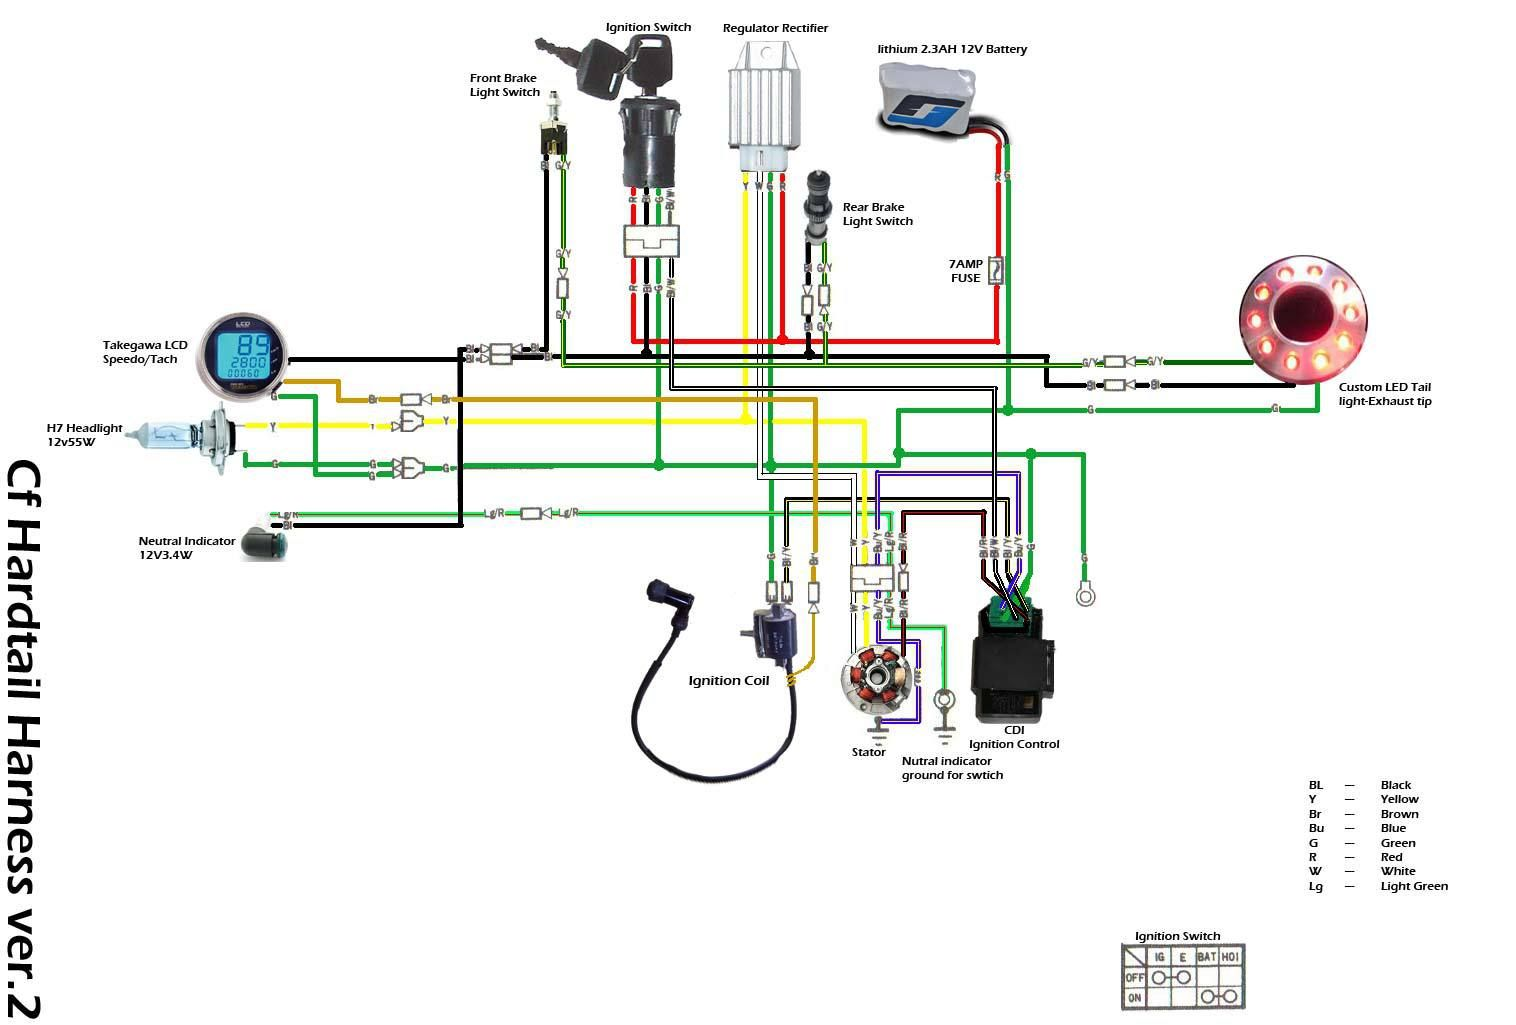 110cc Basic Wiring Setup ATVConnection Com ATV Enthusiast Community Within  110Cc Chinese Atv Diagram in 2020 | Motorcycle wiring, Pit bike, Electrical  wiring